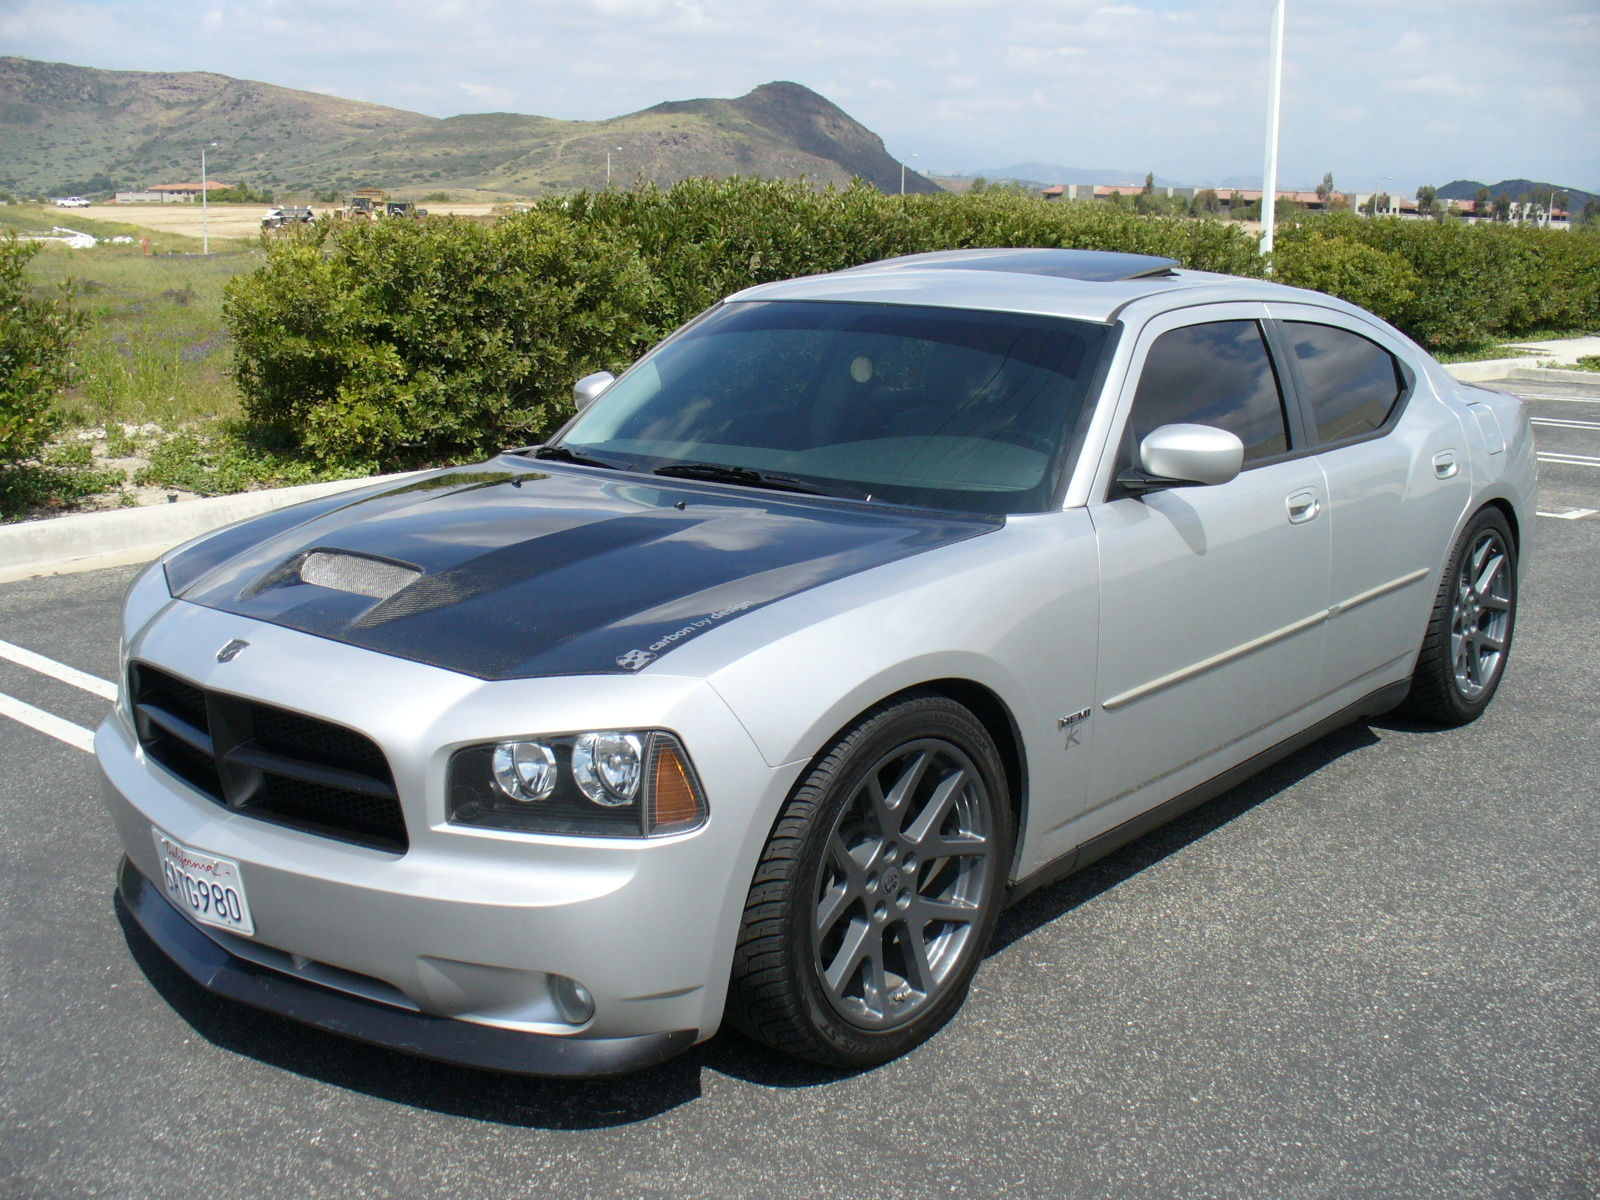 dongoati 2007 Dodge Charger Specs, Photos, Modification Info at ...